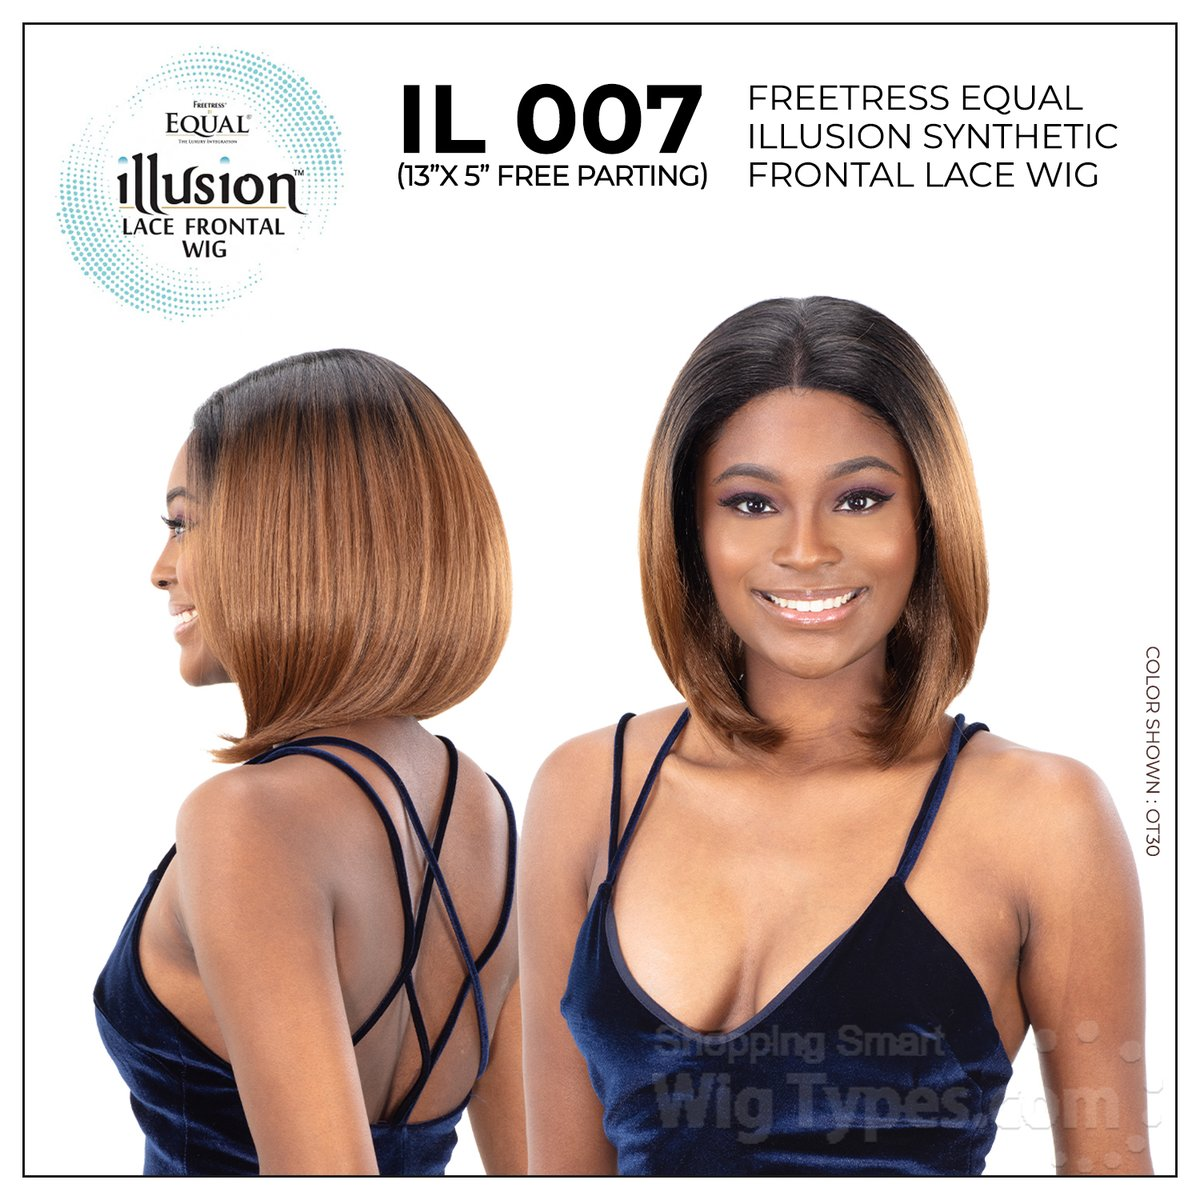 Freetress Equal Illusion Synthetic Frontal Lace Wig - IL 007 (13x5 free parting) (https://soo.nr/88sF)    . . . #wigtypes #wigtypesdotcom #trendyhair #protectivestyles #blackgirlhair #instahair #lacefrontalwig #syntheticwigs #illusionwig #freepartingwig #il007wigpic.twitter.com/g77G9DxNC6